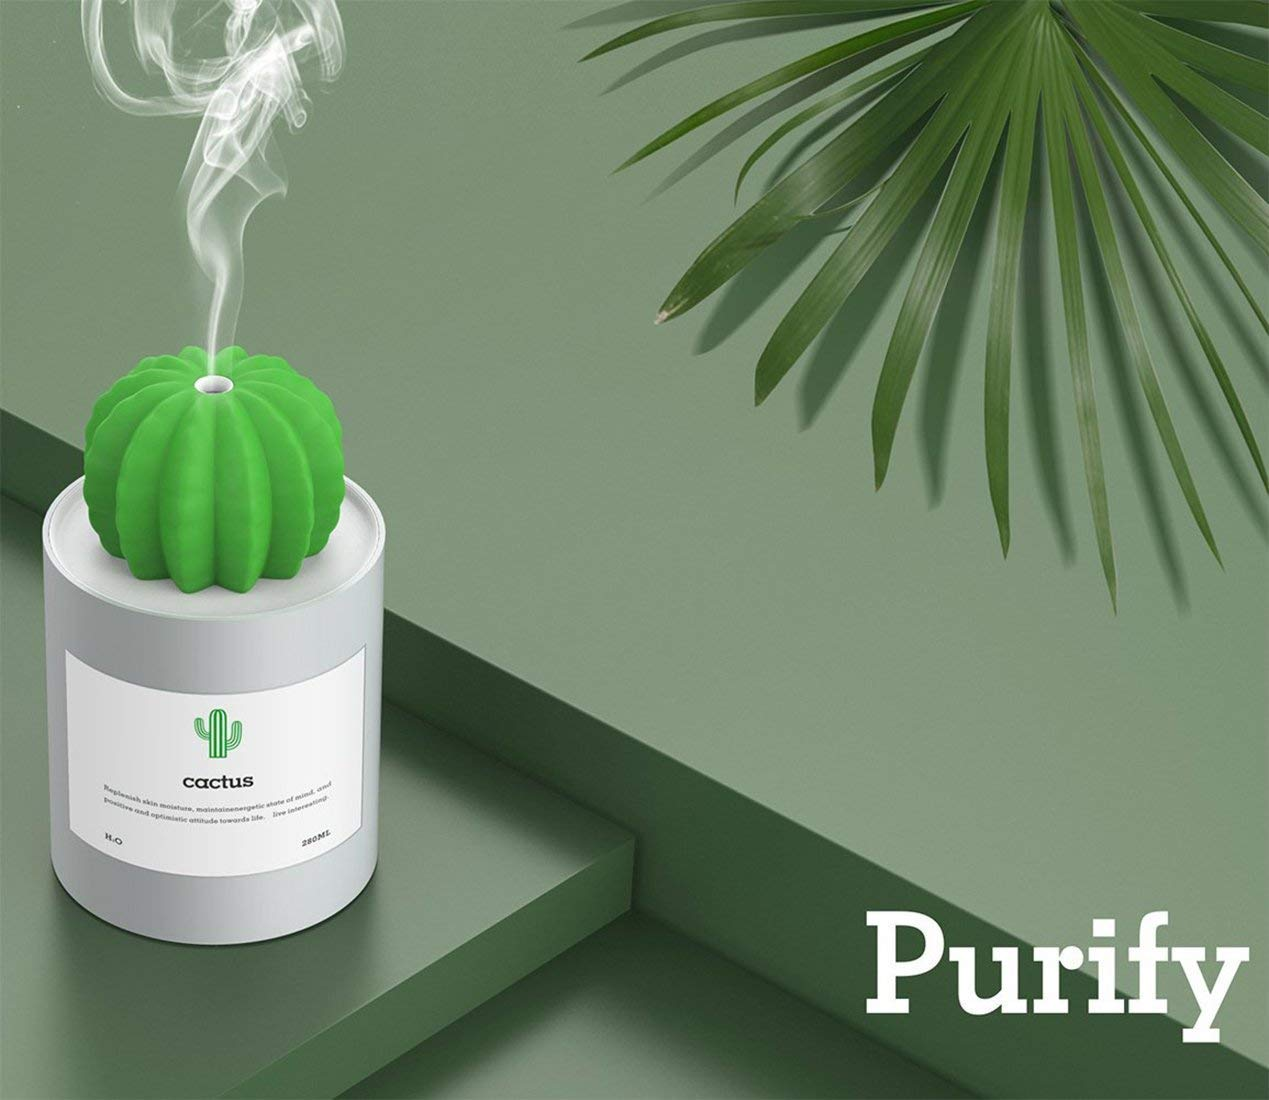 Ultra-Quiet Operation for Bedroom Home Office Desk Yoga Car Travel 280ml USB Cool Mist Portable Cactus Air humidifier White AOLODA Mini Humidifier